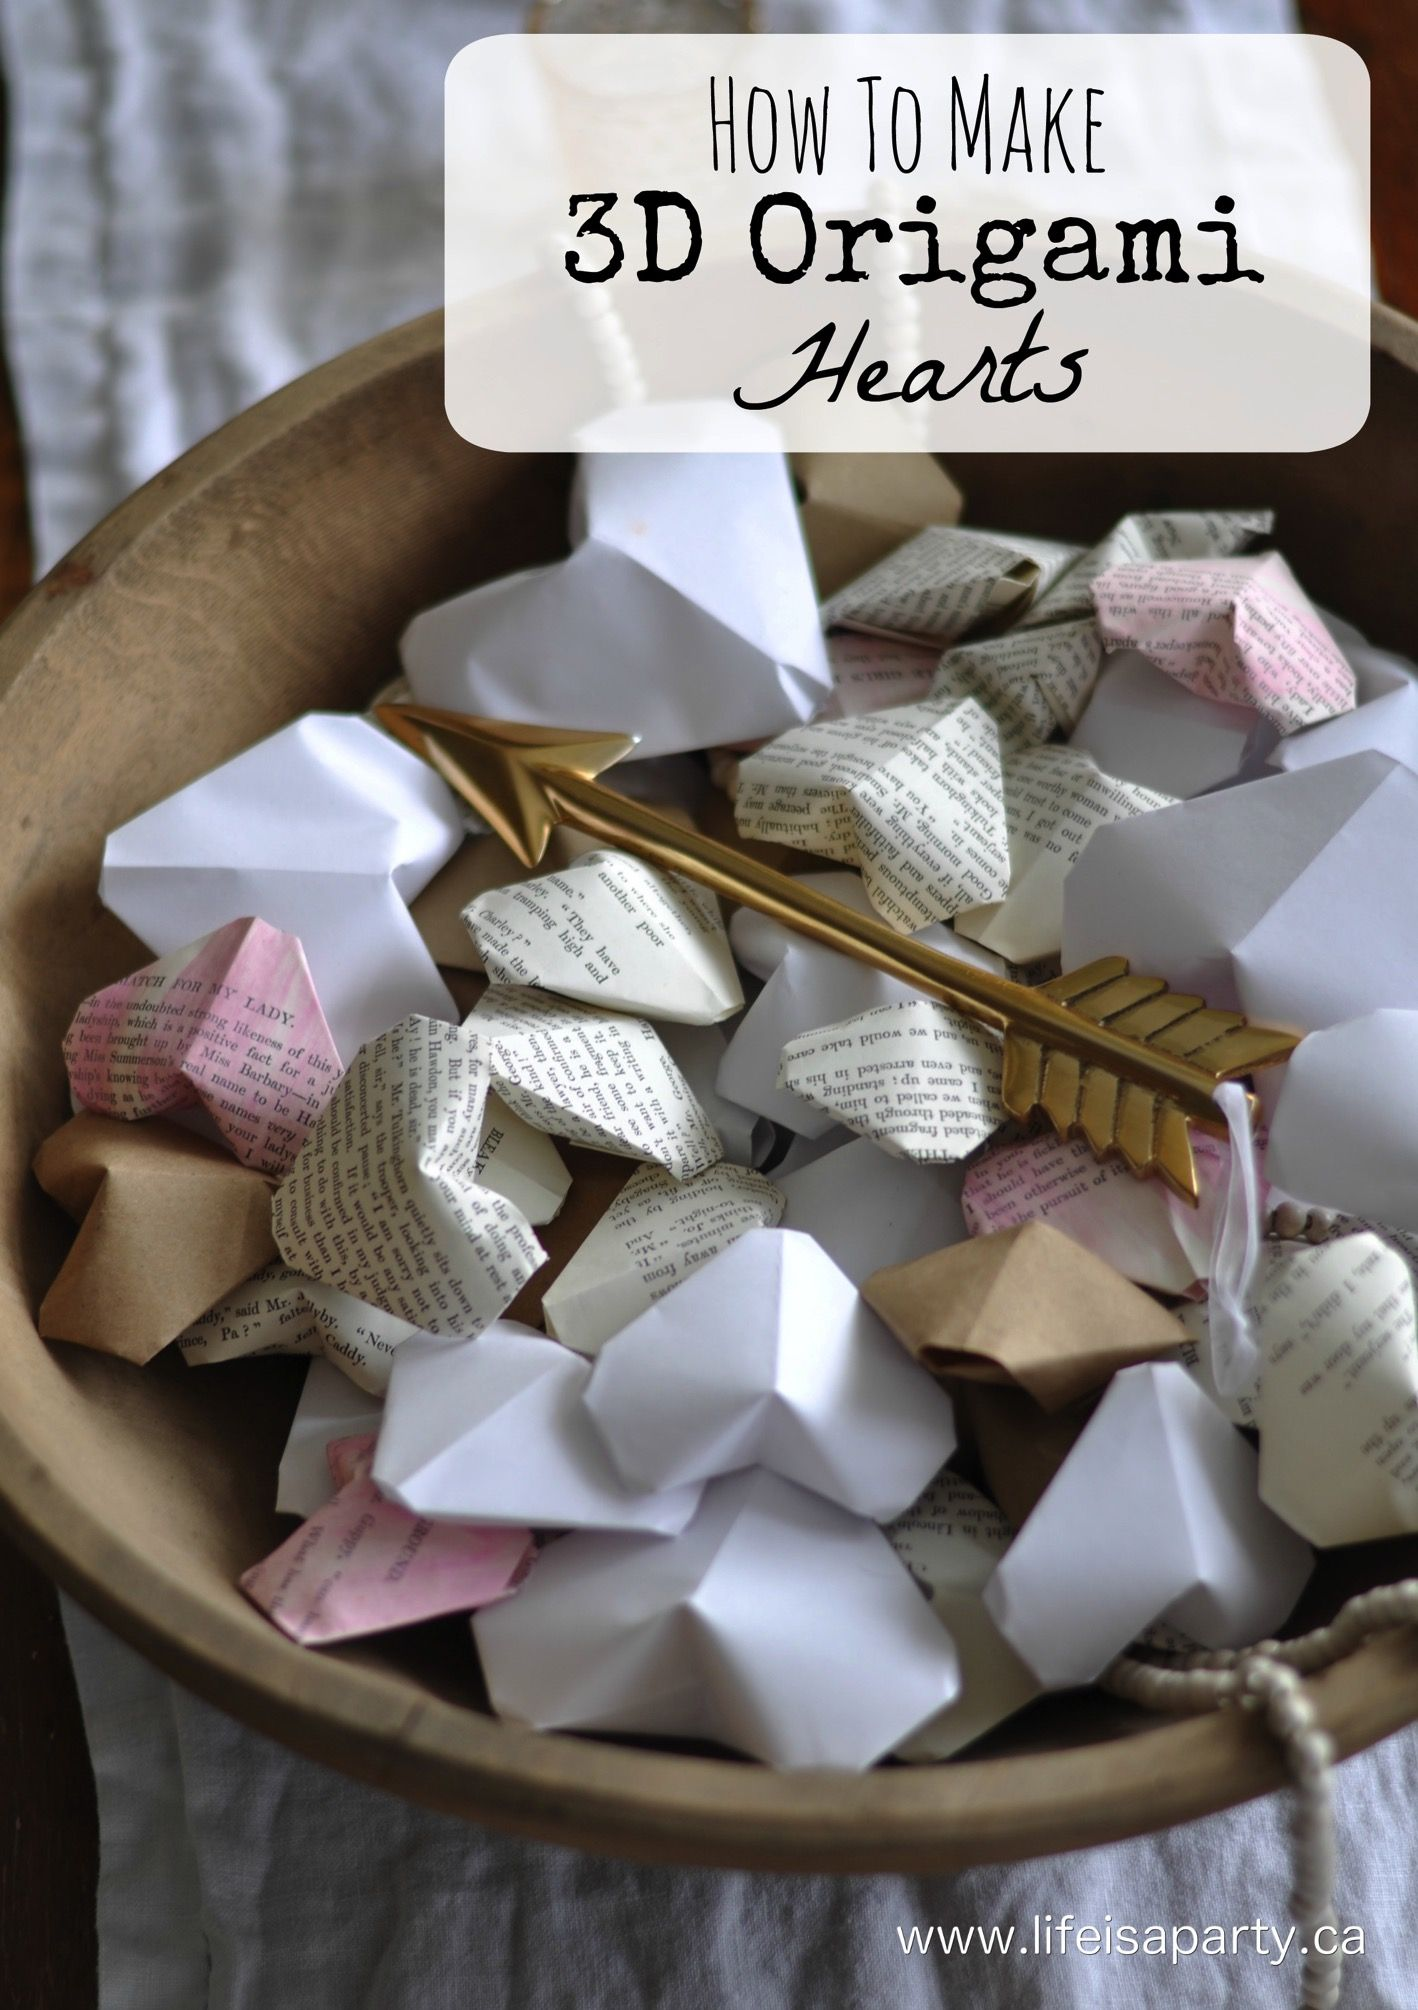 3D Origami Hearts: How To Make 3D Origami Hearts, with a ... - photo#43